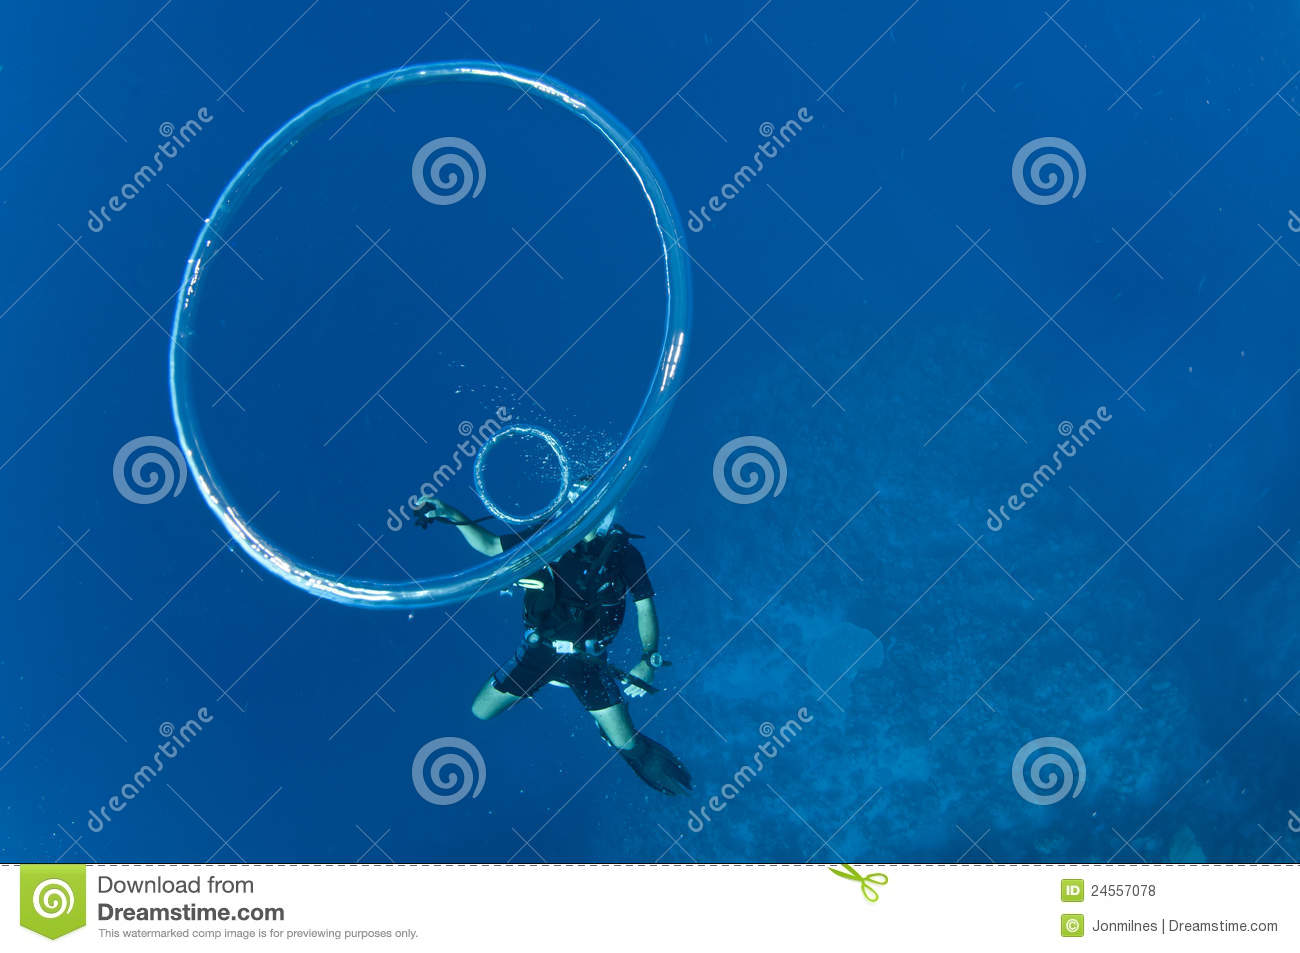 ring to rings underwater diver bubble blow how a an sport